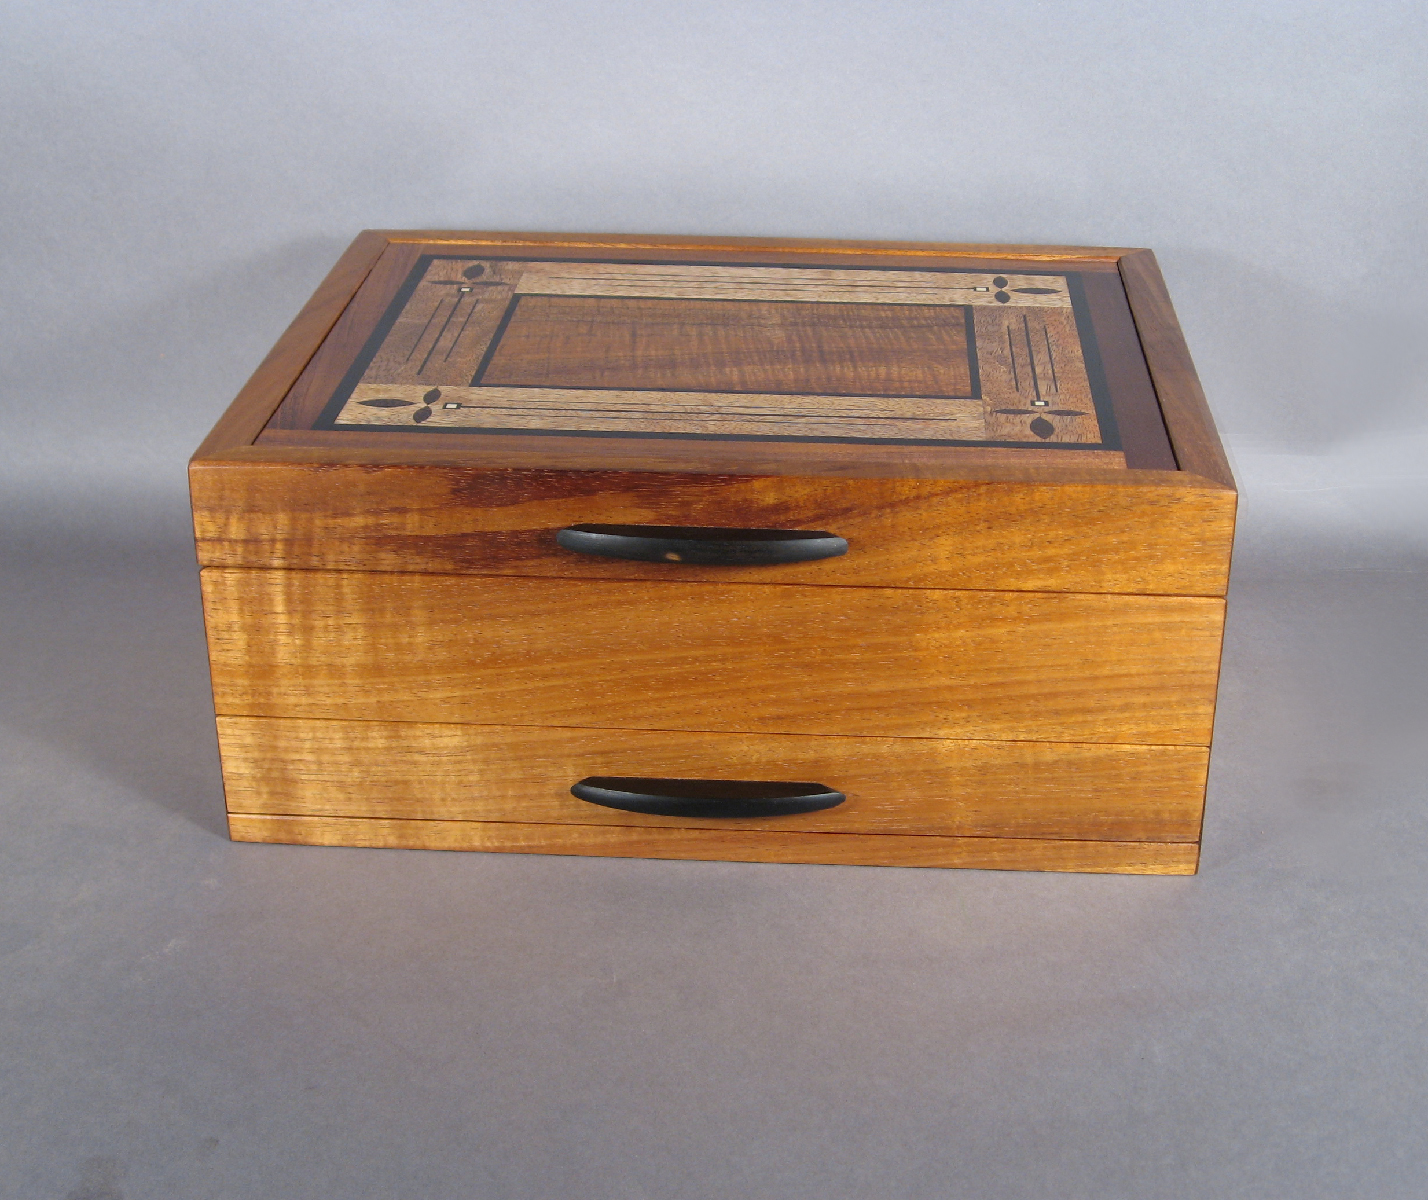 Art Deco Style Jewelry Boxes Koa Jewelry Boxes With Handcrafted Inlay